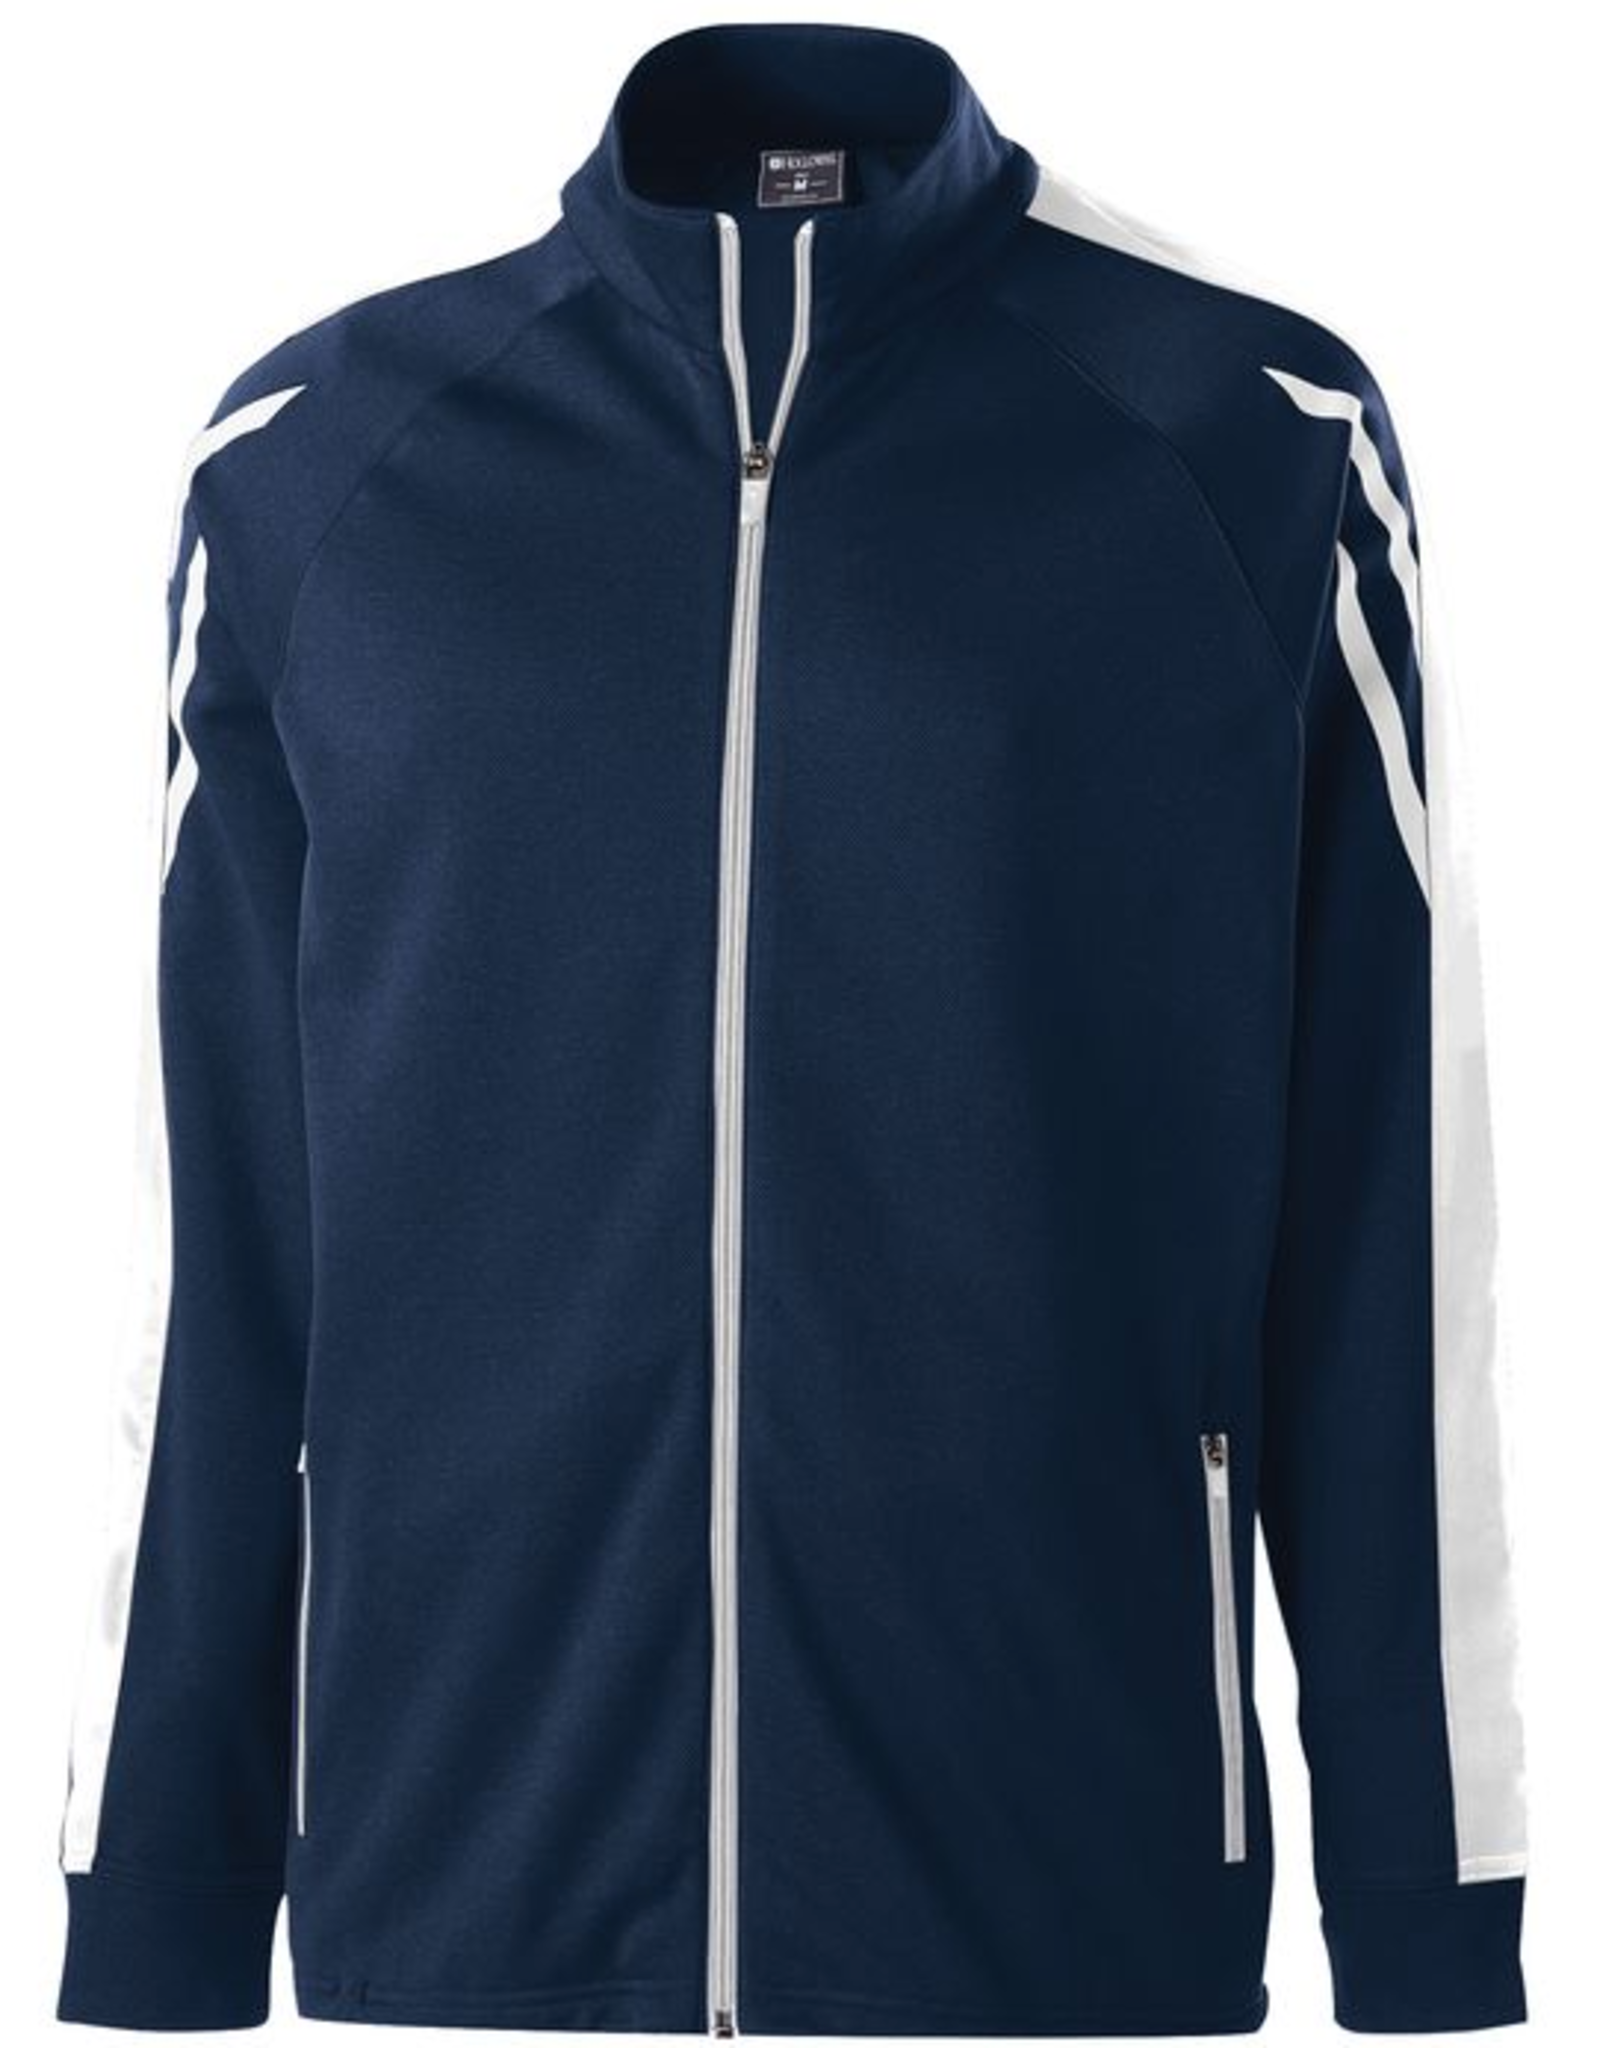 NON-UNIFORM Flux jacket with custom SilverLine embroidery.